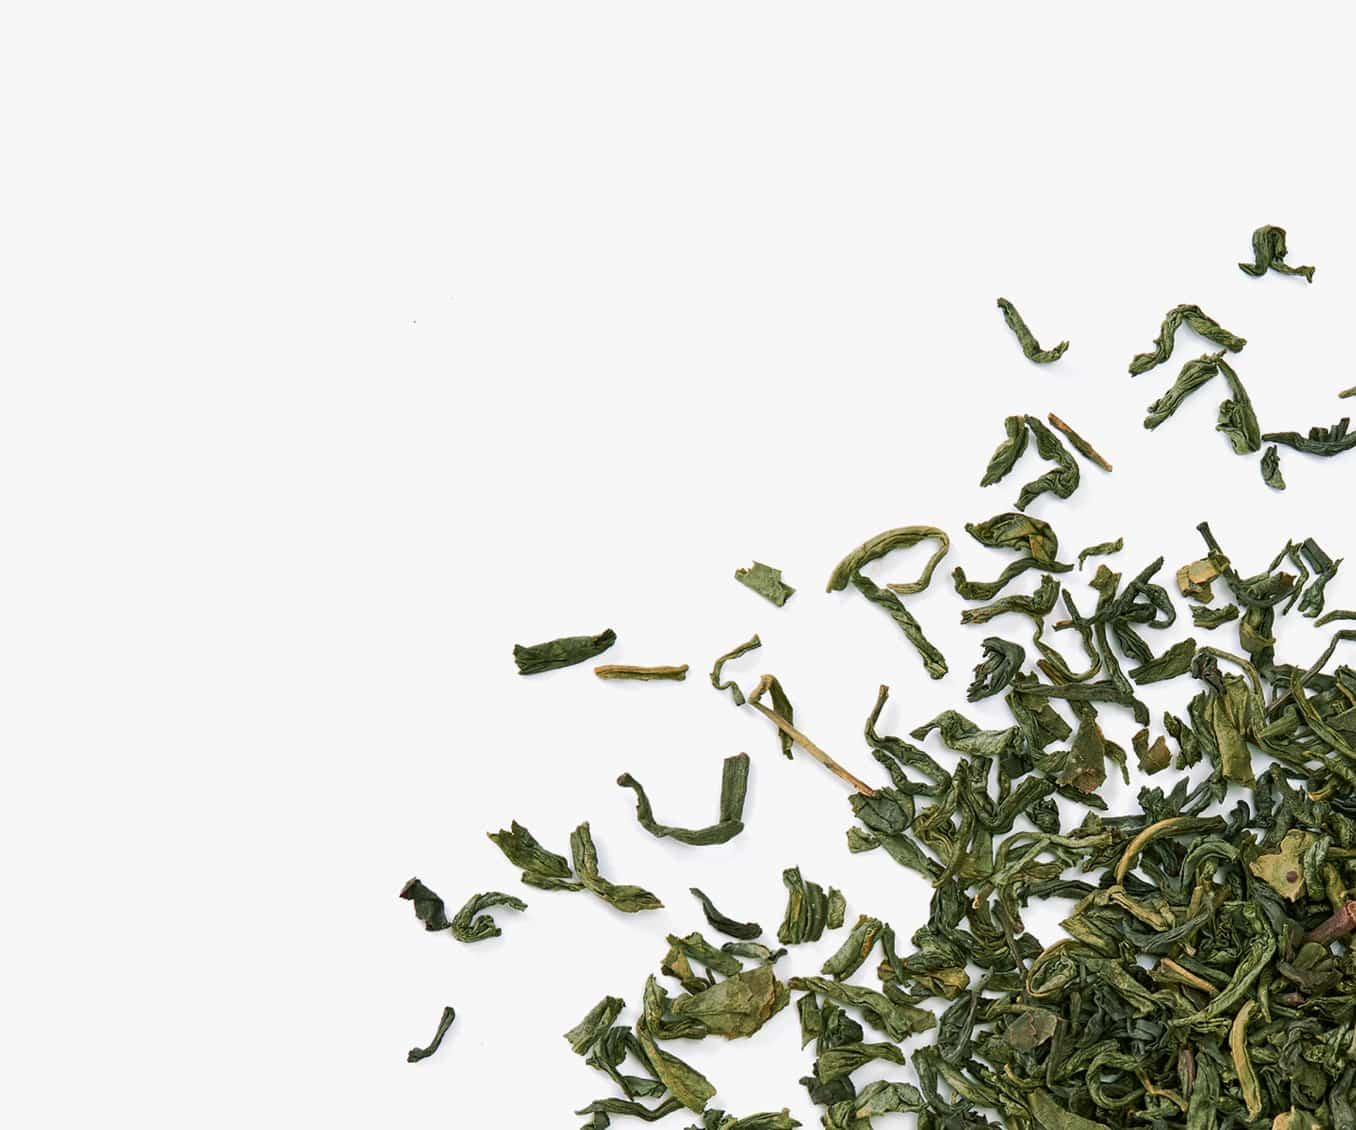 Loose leaf green tea placed in the bottom right corner on a white background.